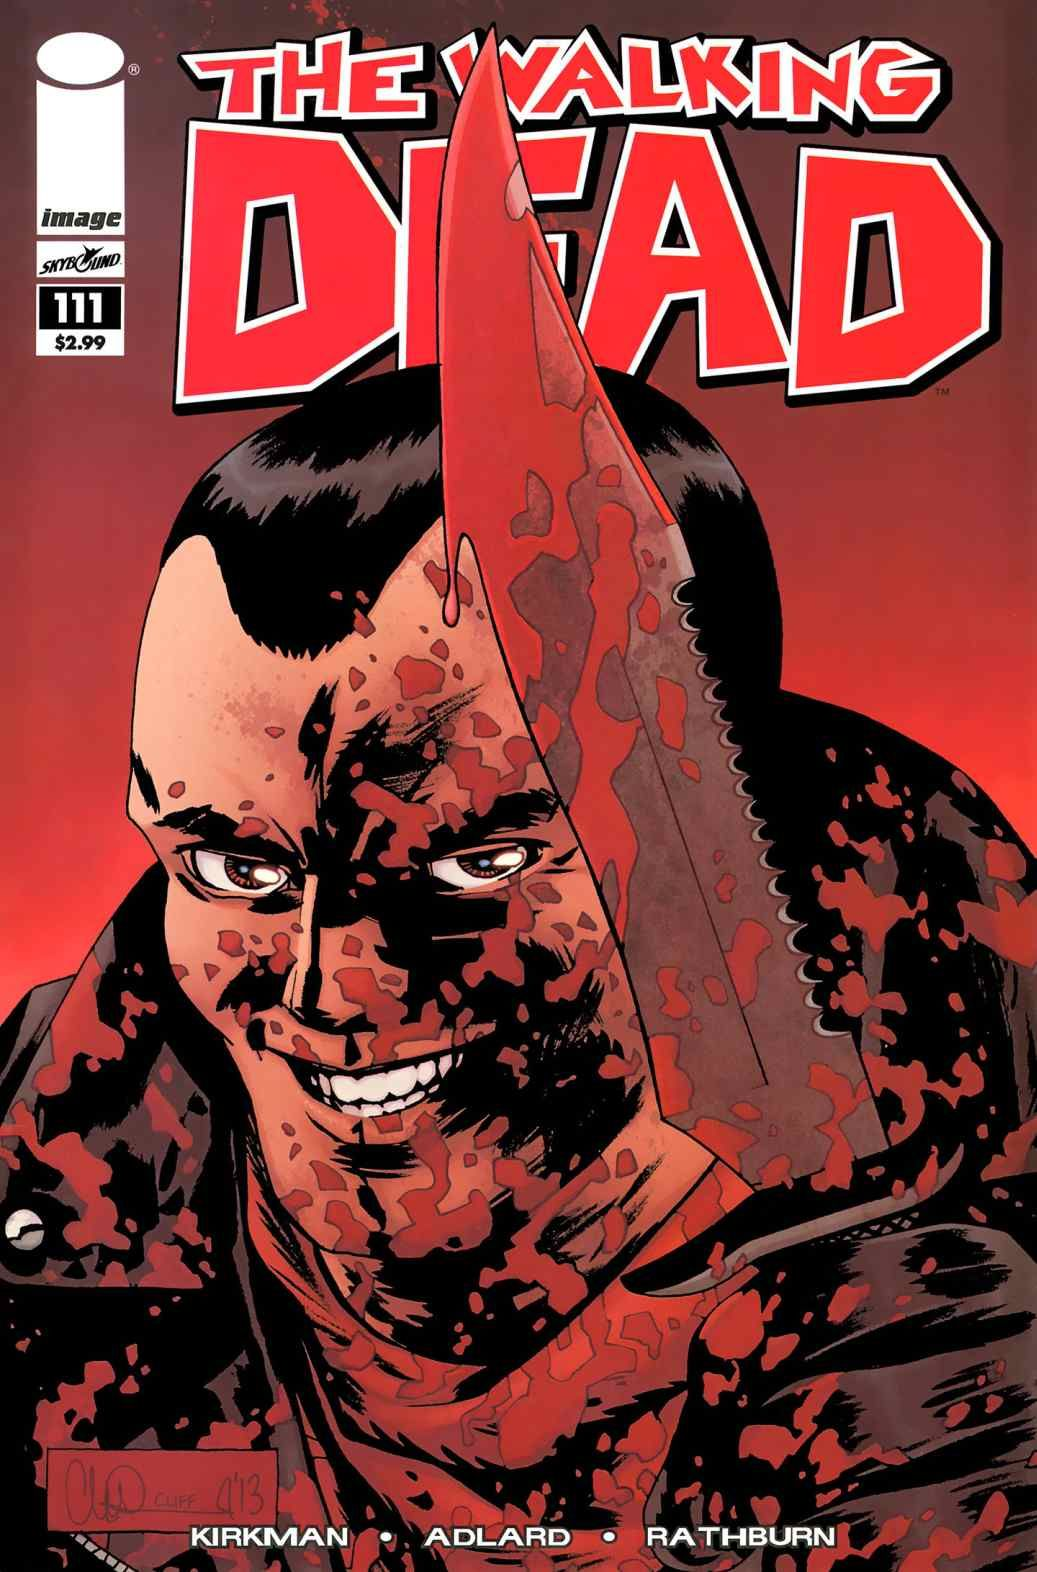 Read Comics Online Free The Walking Dead Chapter 111 Page 1